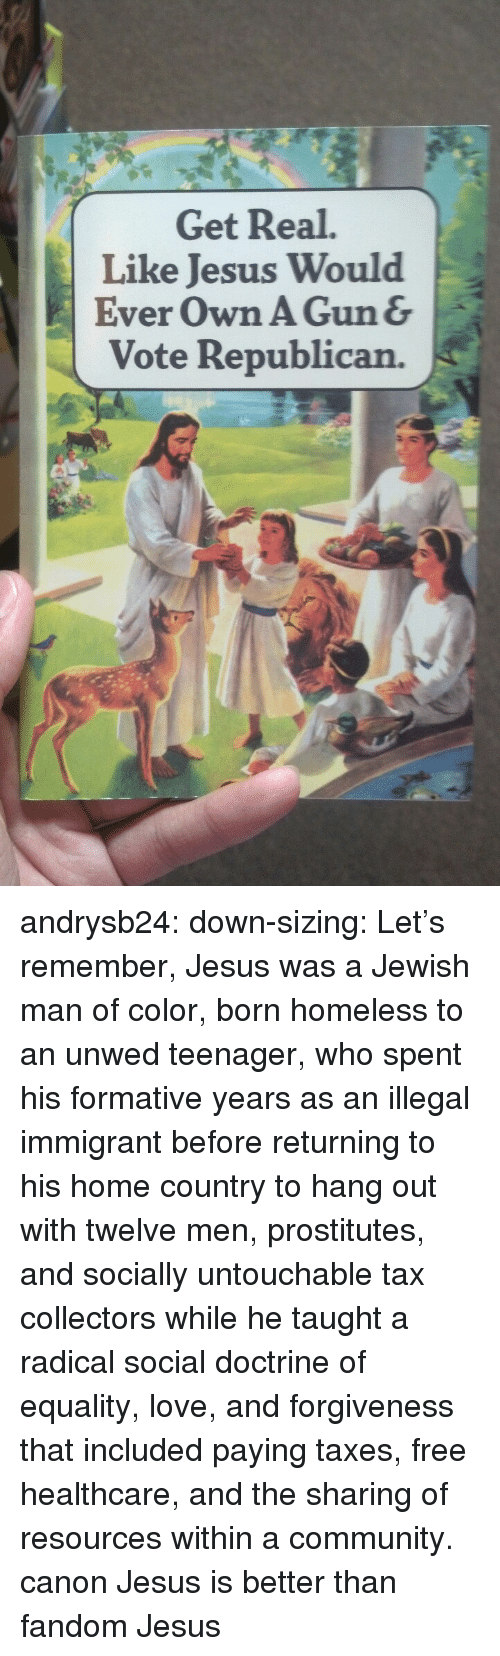 Community, Homeless, and Jesus: Get Real.  Like Jesus Would  Ever Own A Gun&  Vote Republican. andrysb24: down-sizing:  Let's remember, Jesus was a Jewish man of color, born homeless to an unwed teenager, who spent his formative years as an illegal immigrant before returning to his home country to hang out with twelve men, prostitutes, and socially untouchable tax collectors while he taught a radical social doctrine of equality, love, and forgiveness that included paying taxes, free healthcare, and the sharing of resources within a community.  canon Jesus is better than fandom Jesus